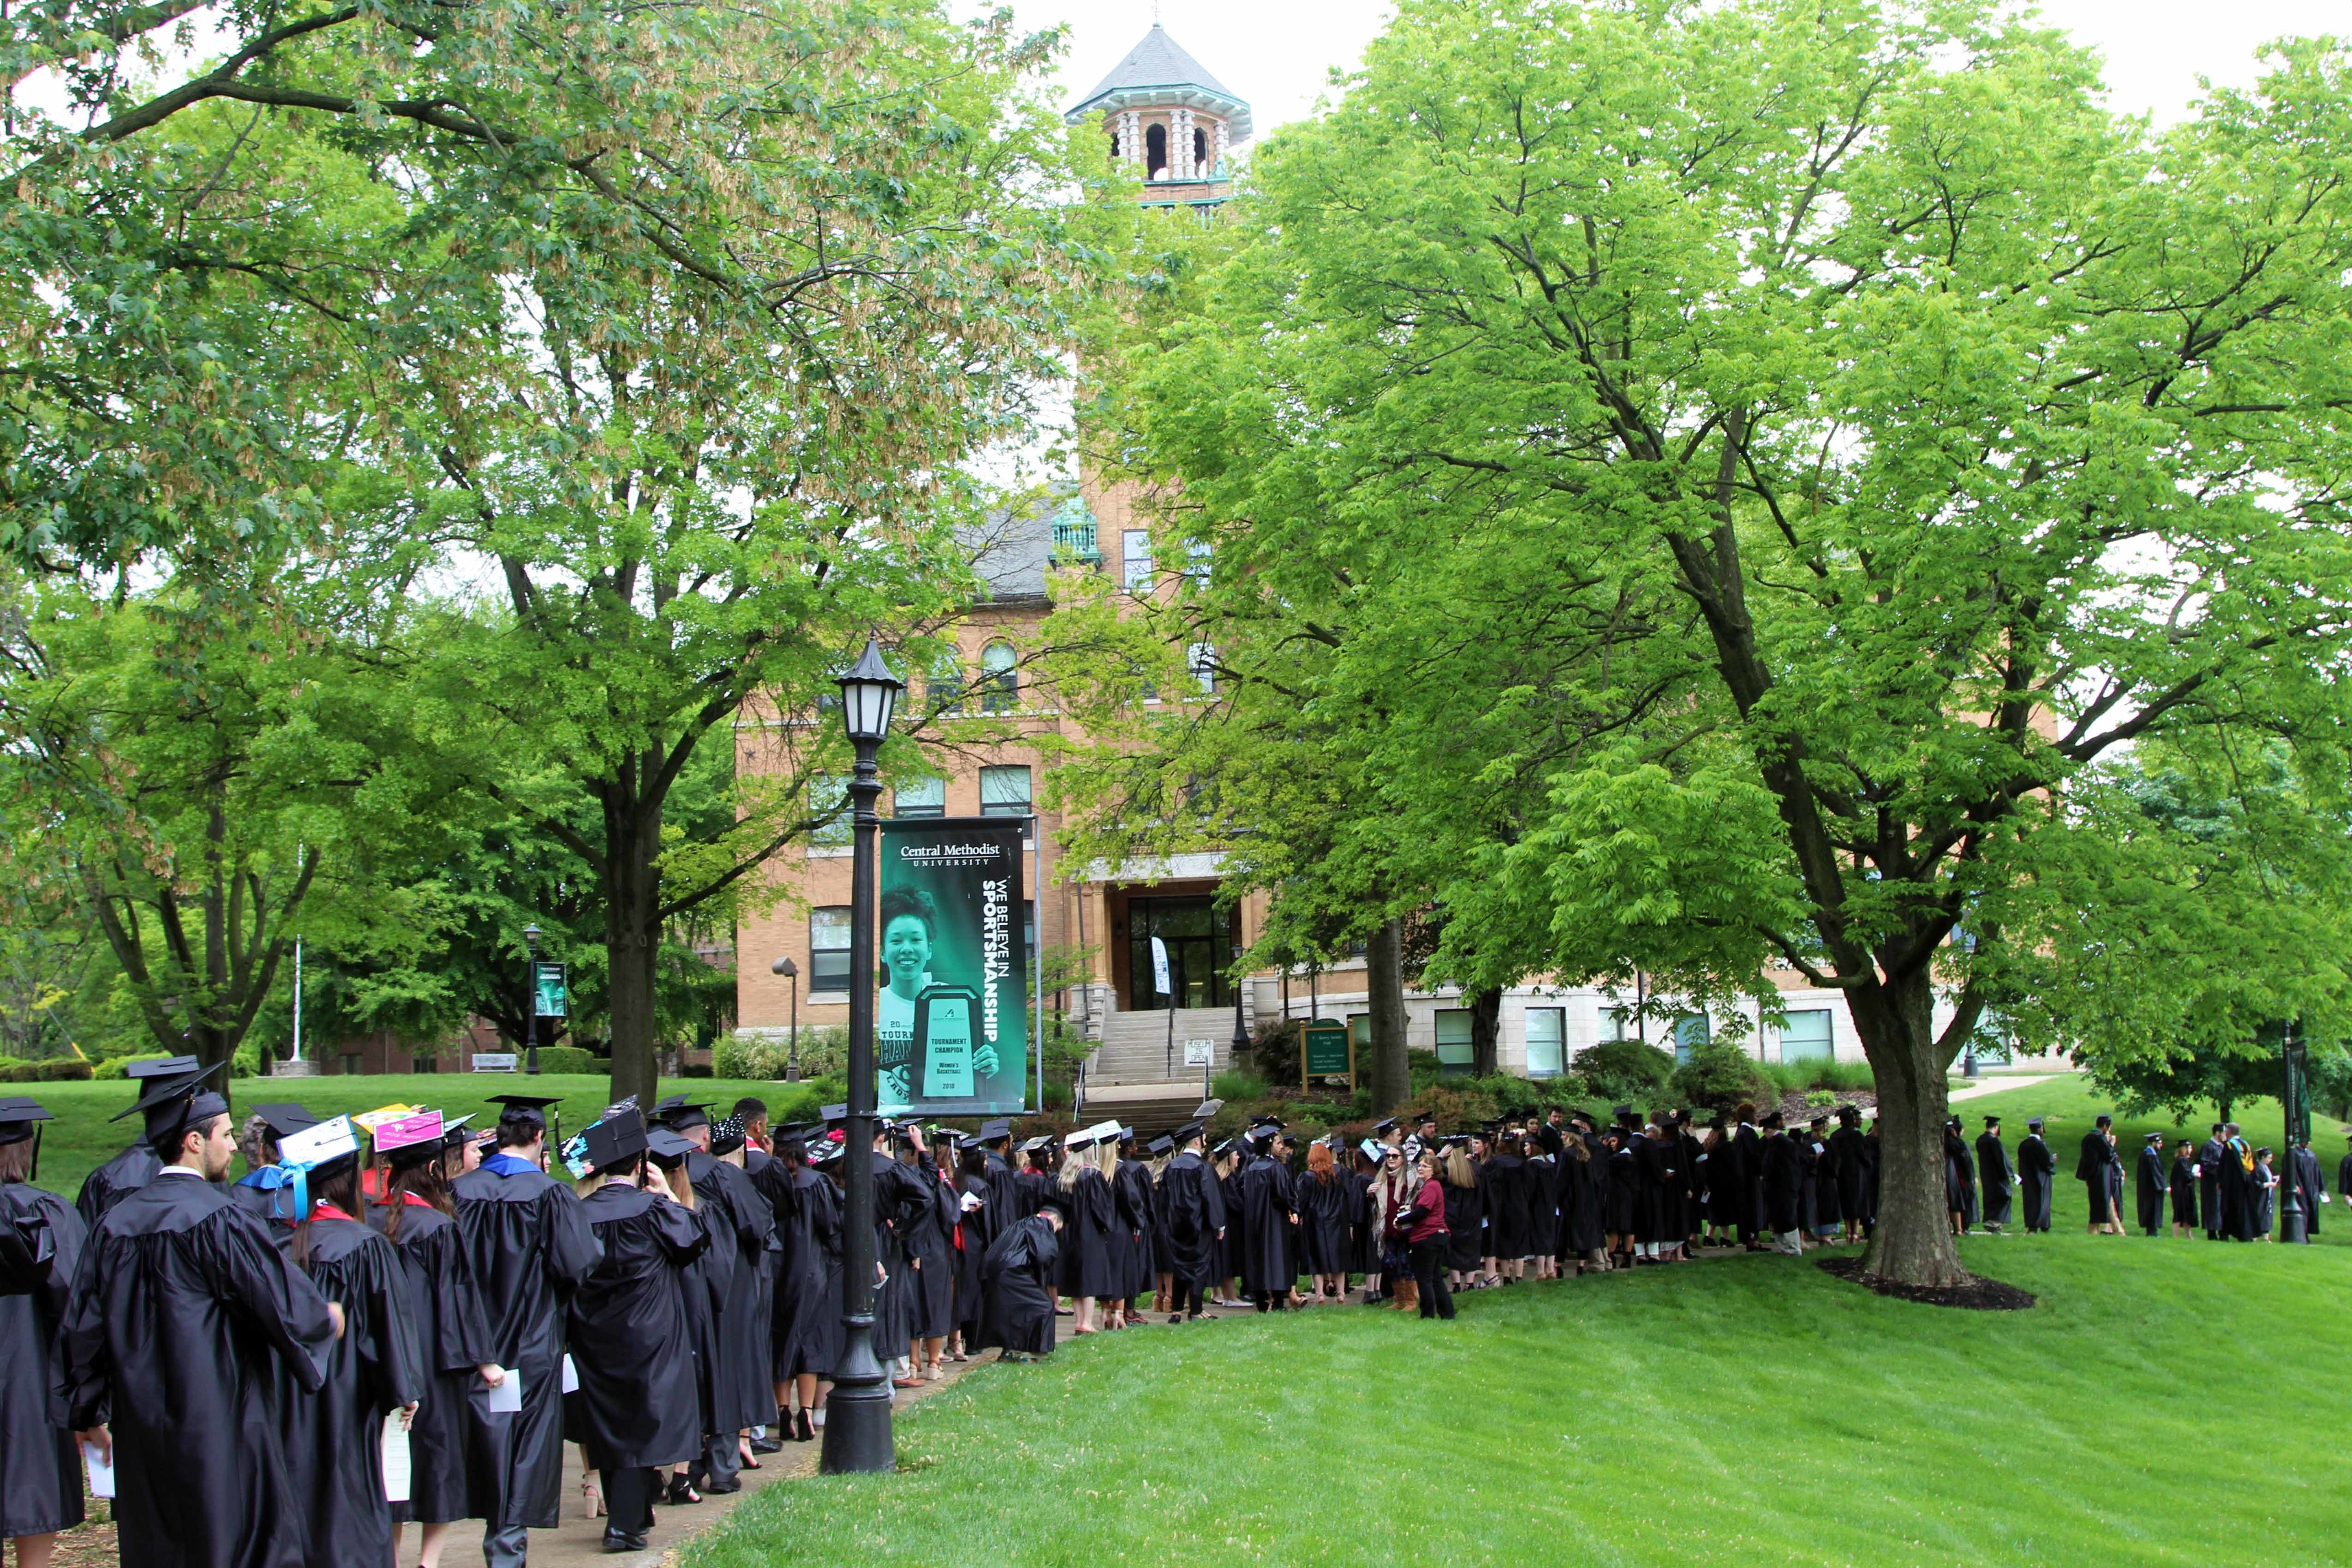 Commencement may 19